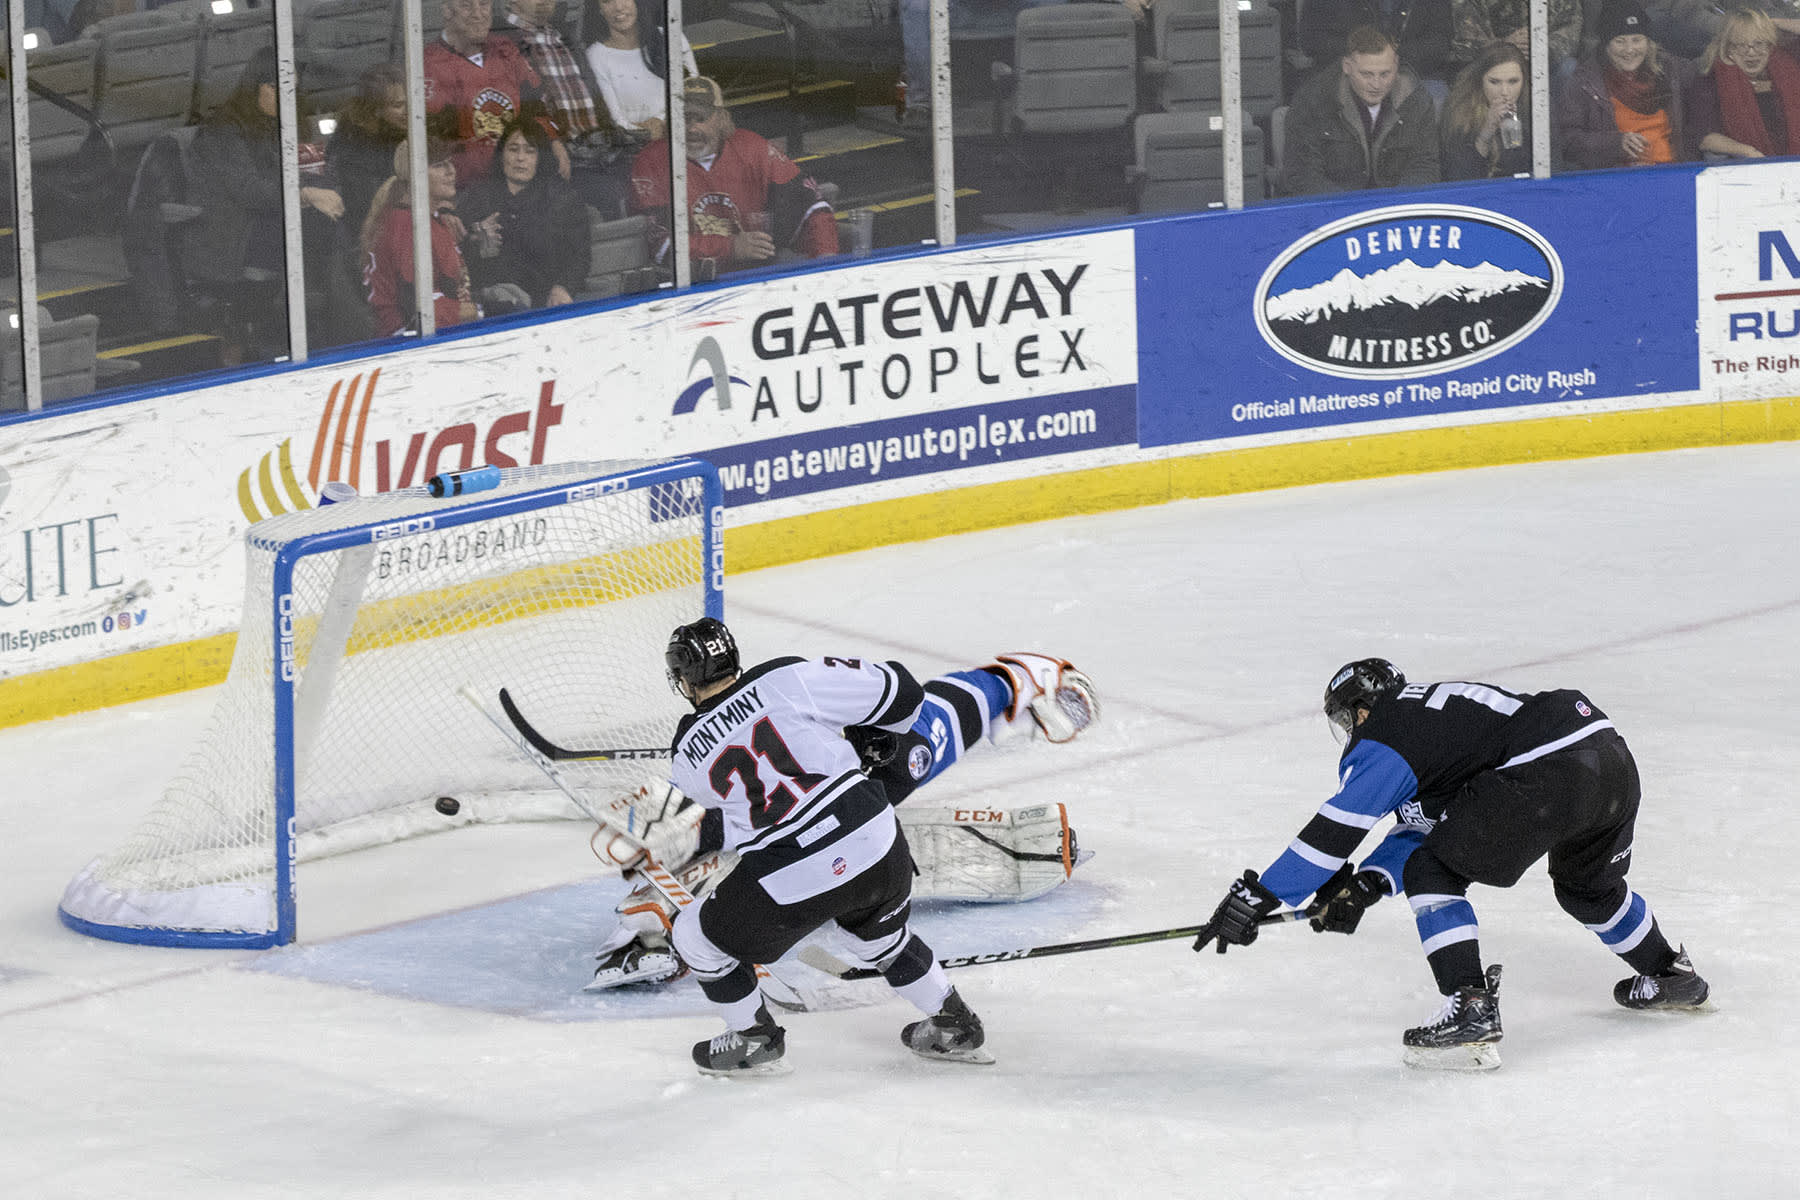 Montminys Second Period Pair Lifts Rush To Win